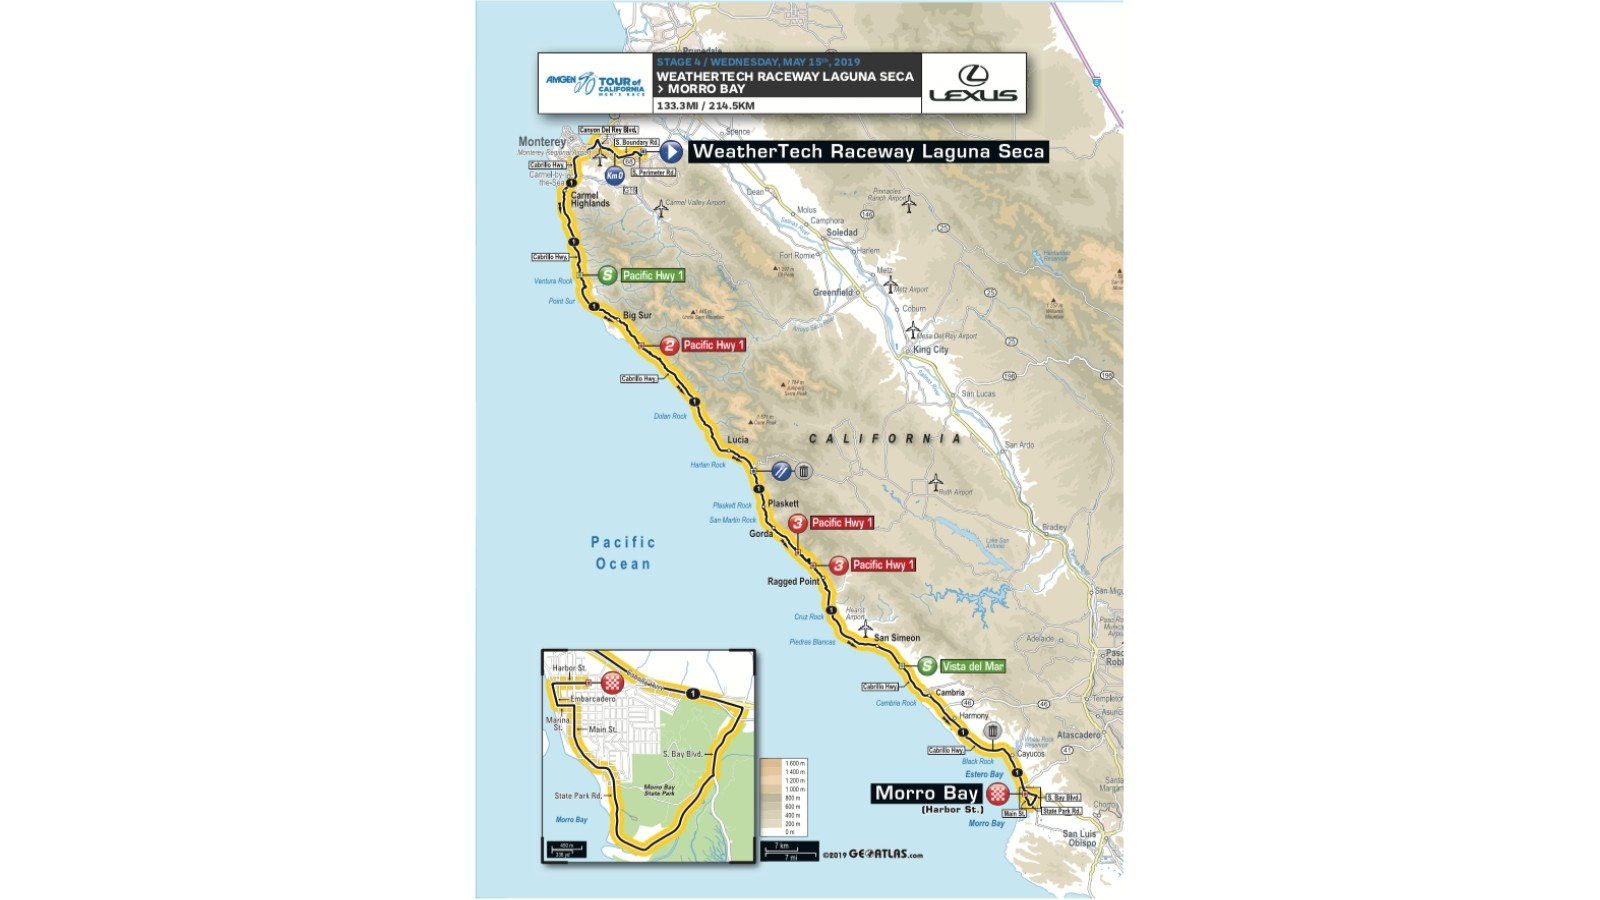 Amgen Tour of California 2019 men's race stage 4 route map